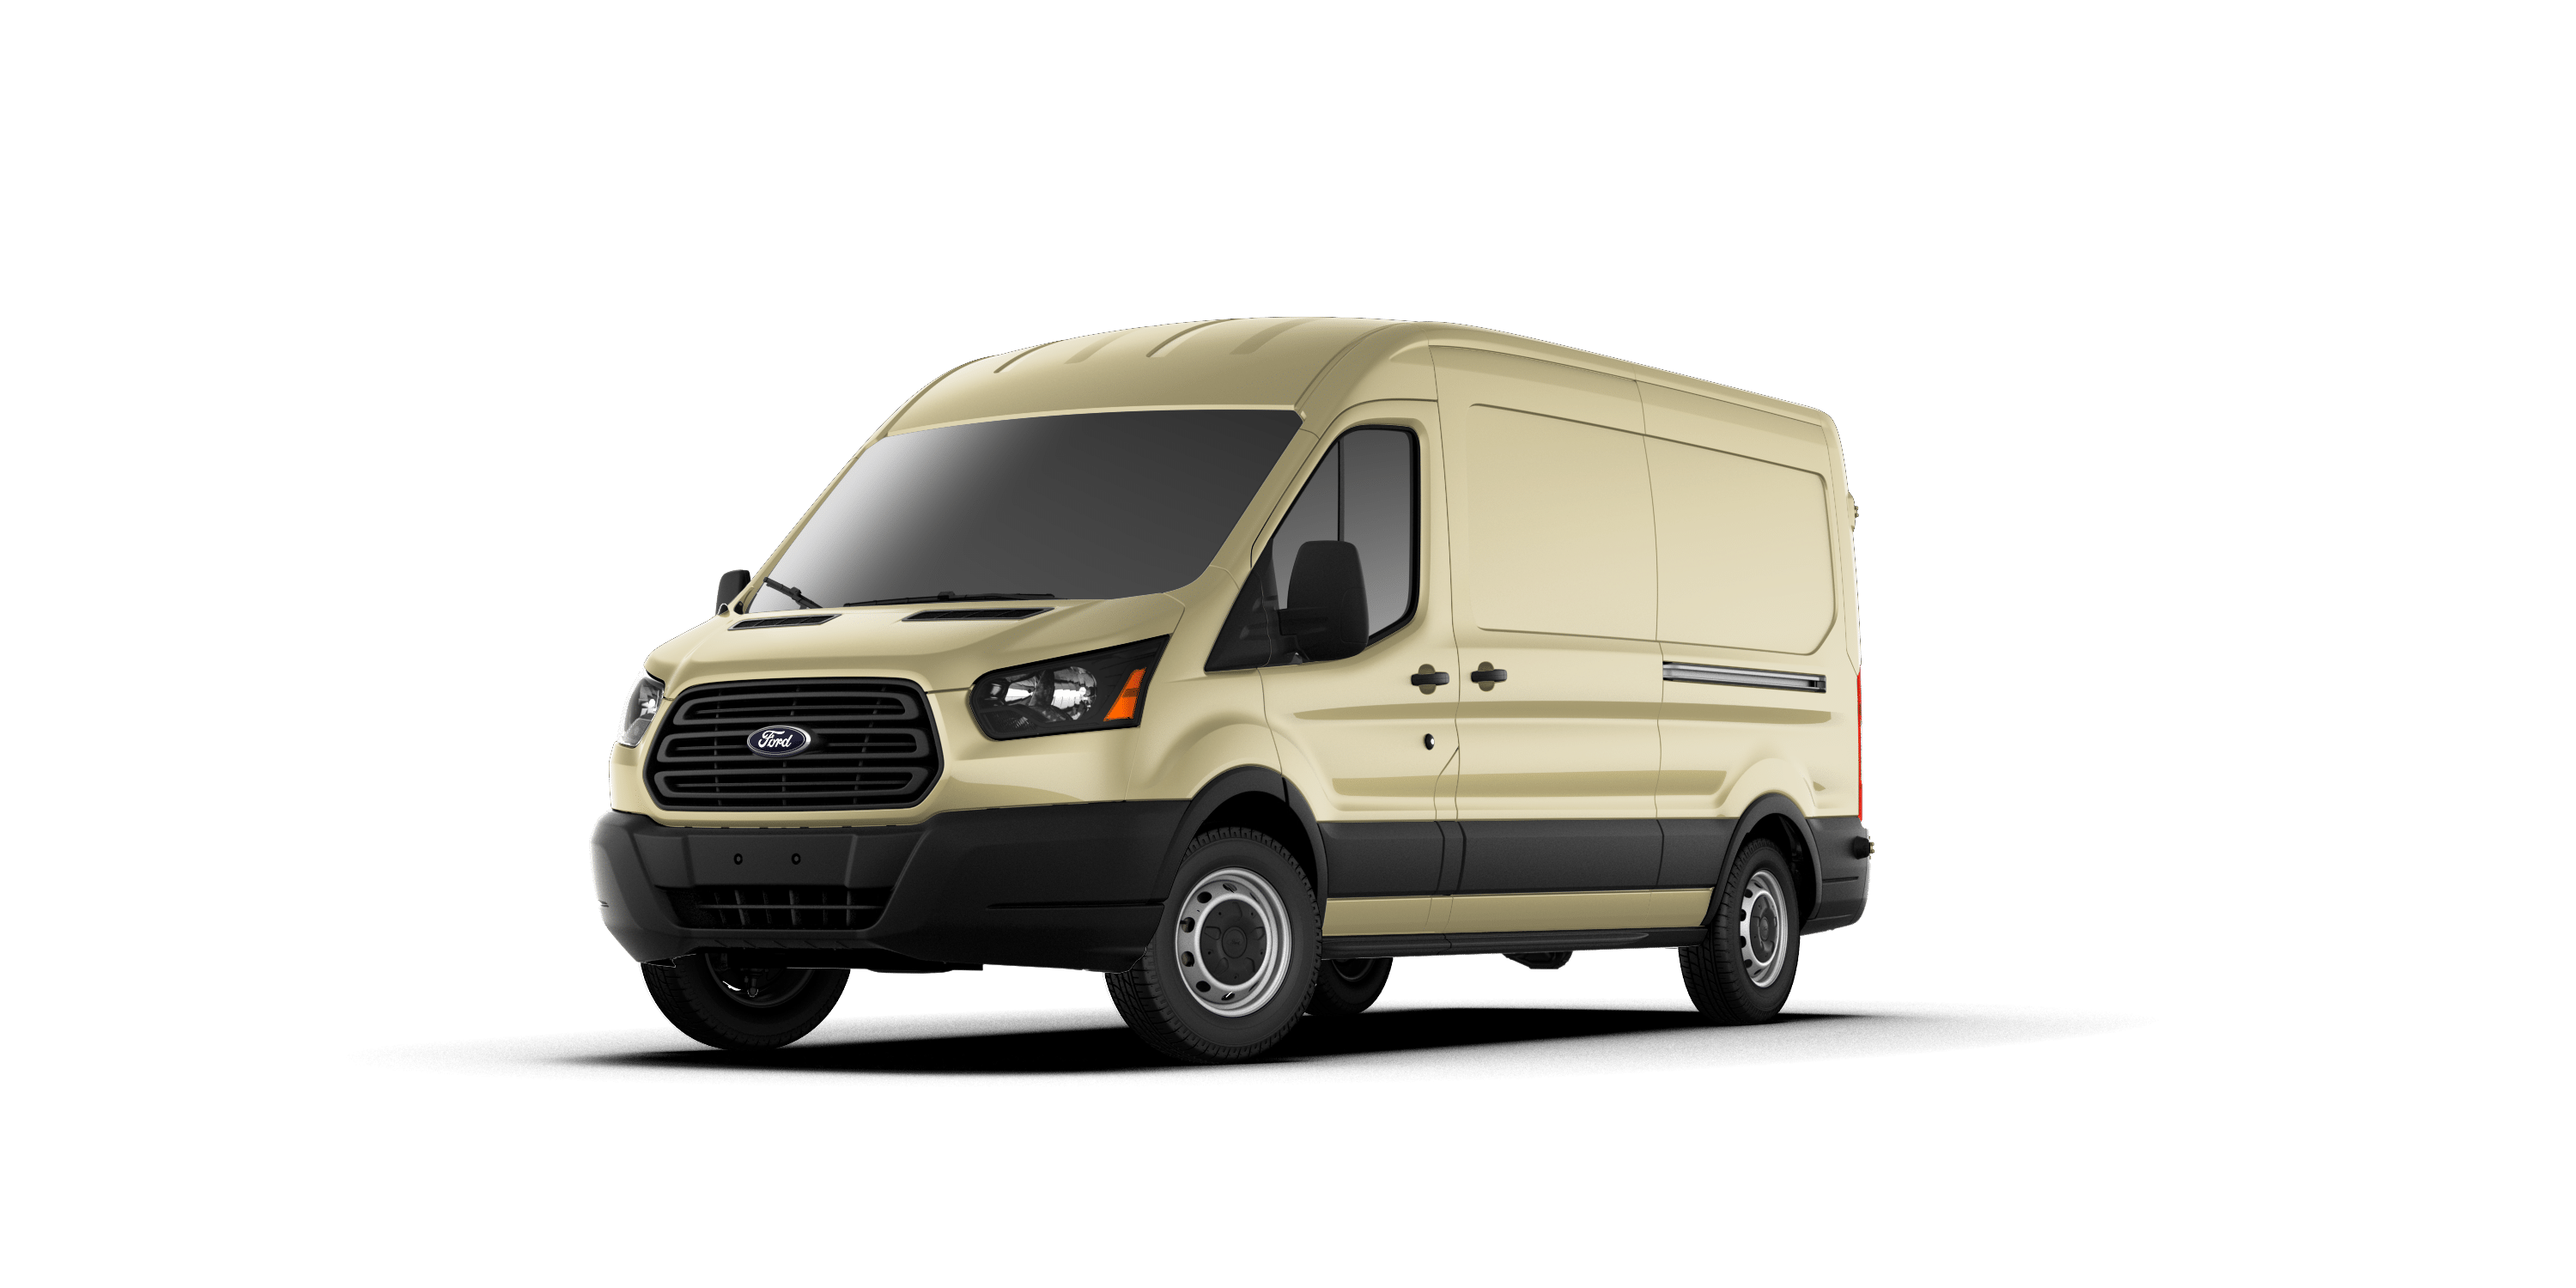 For Sale In Nantucket Ma Don Allen Auto Service Inc 2005 Explorer Fuel Filter Replacement 2017 Ford Transit Van Vehicle Photo 02554 2318